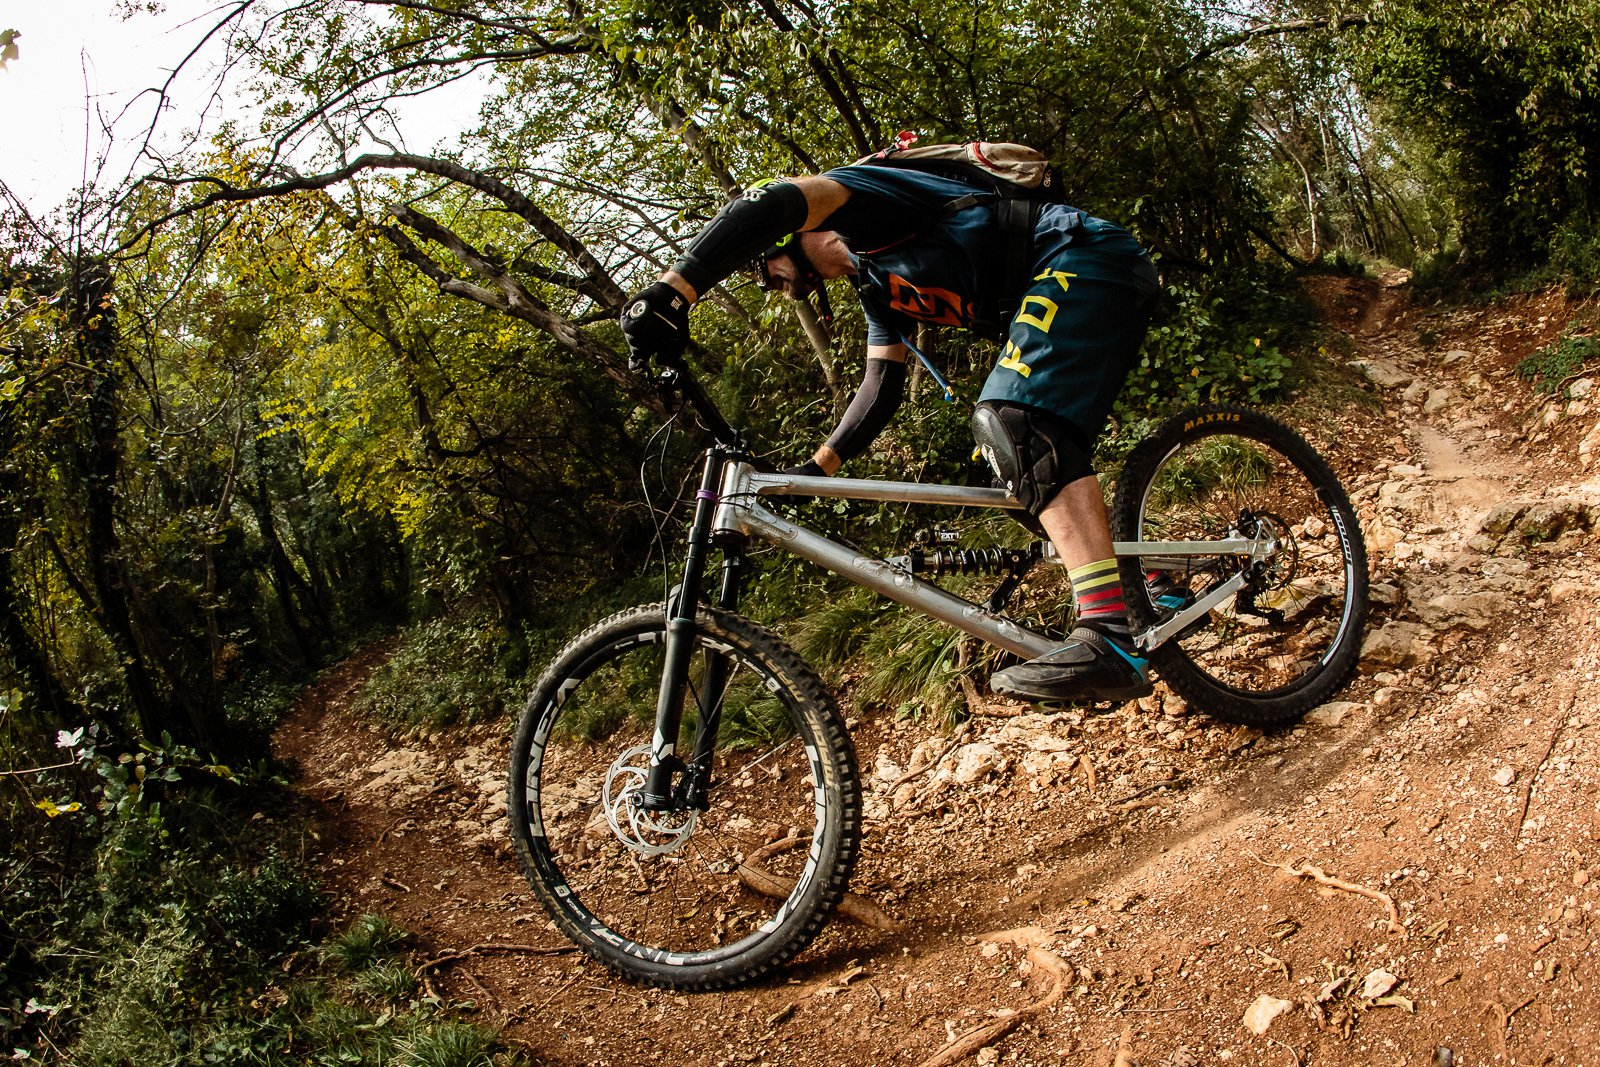 Chris Porter on his XL GeoMetron G1 during testing with EXT